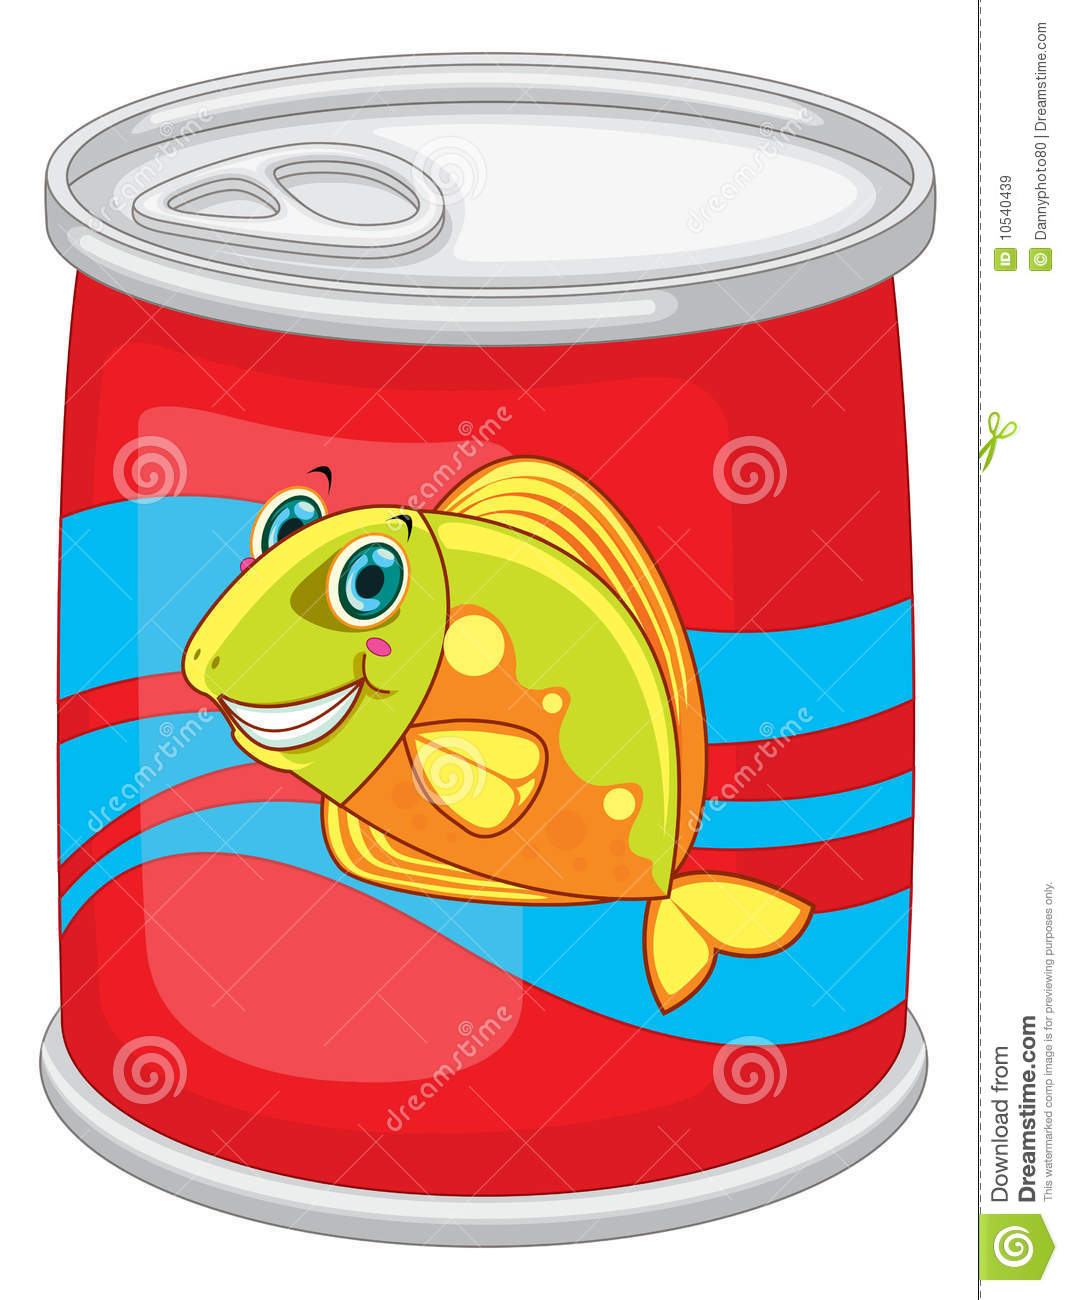 Gallery For > Tin Can Clipart Animated.